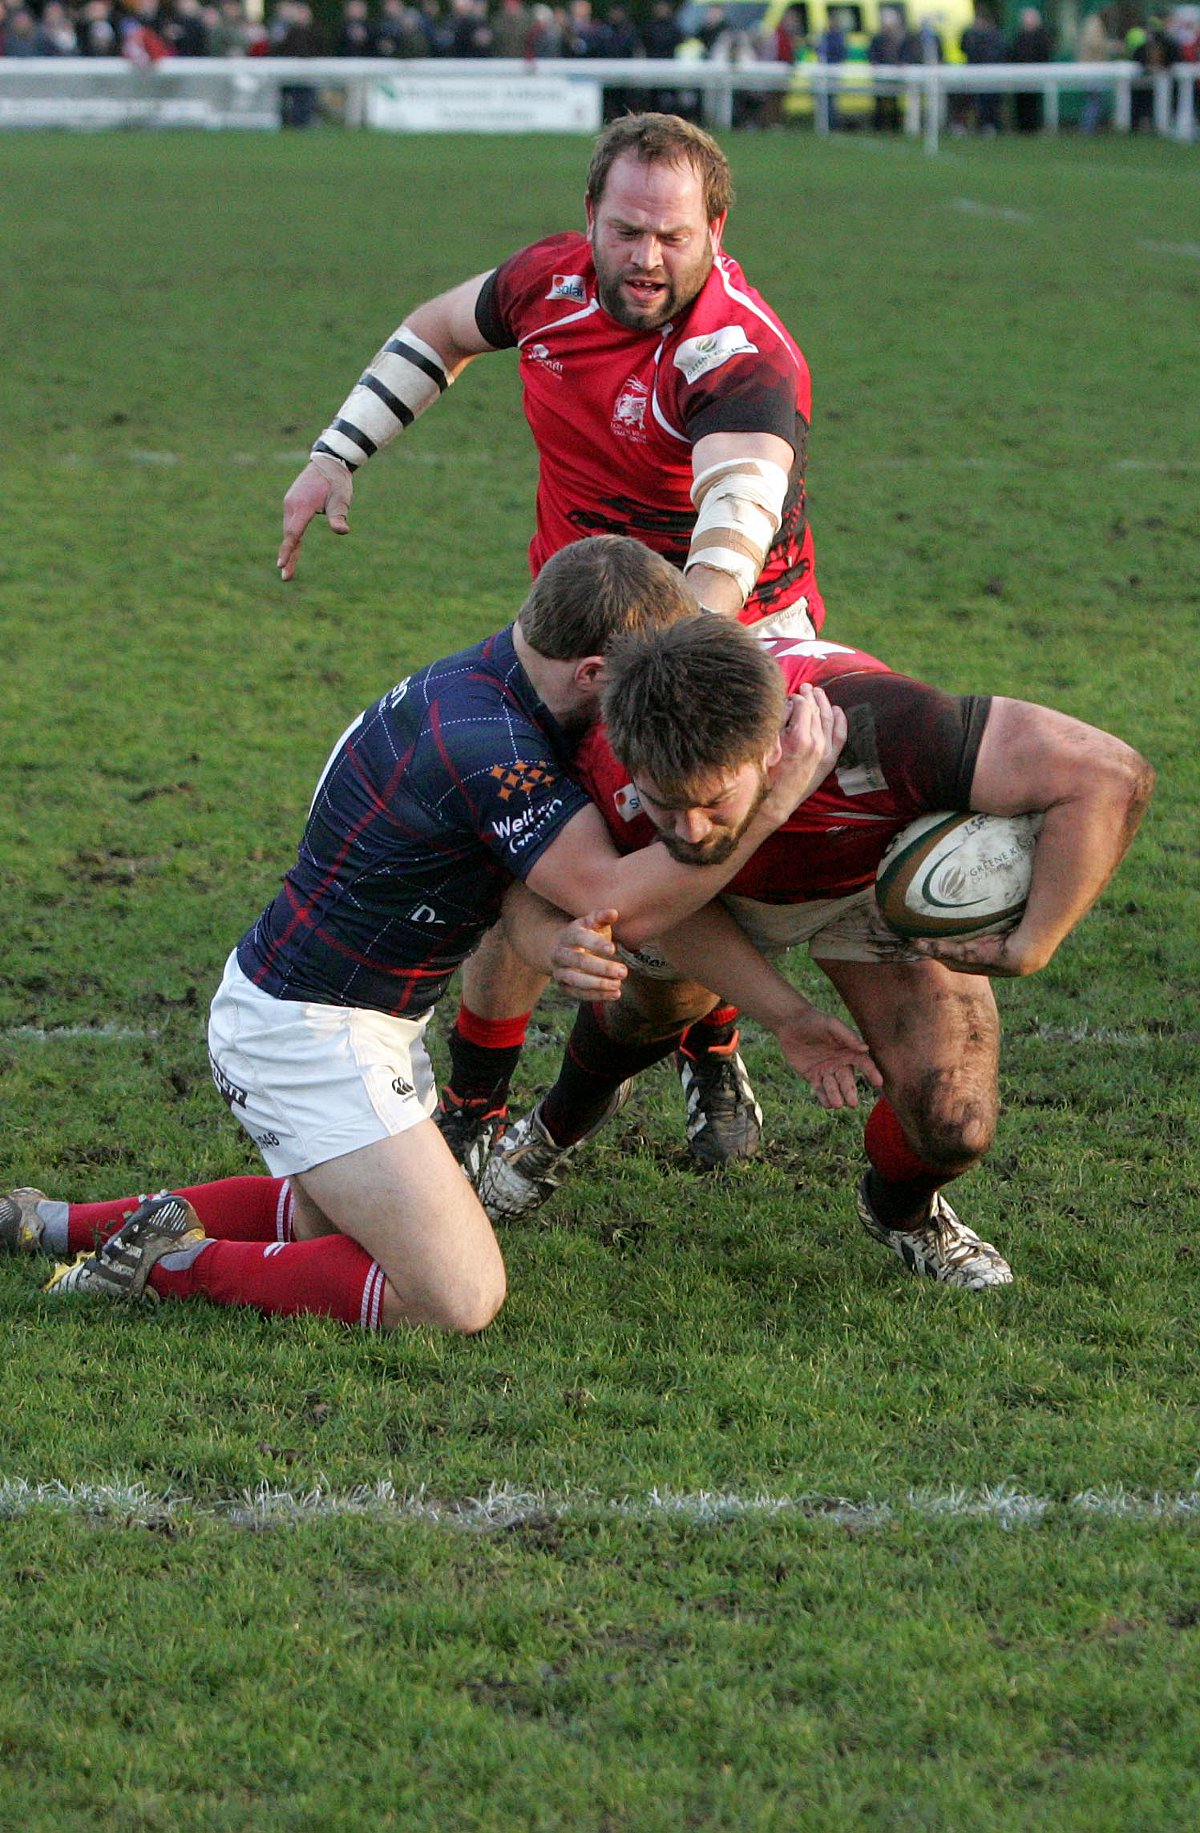 Morris: Welsh were out to make a point